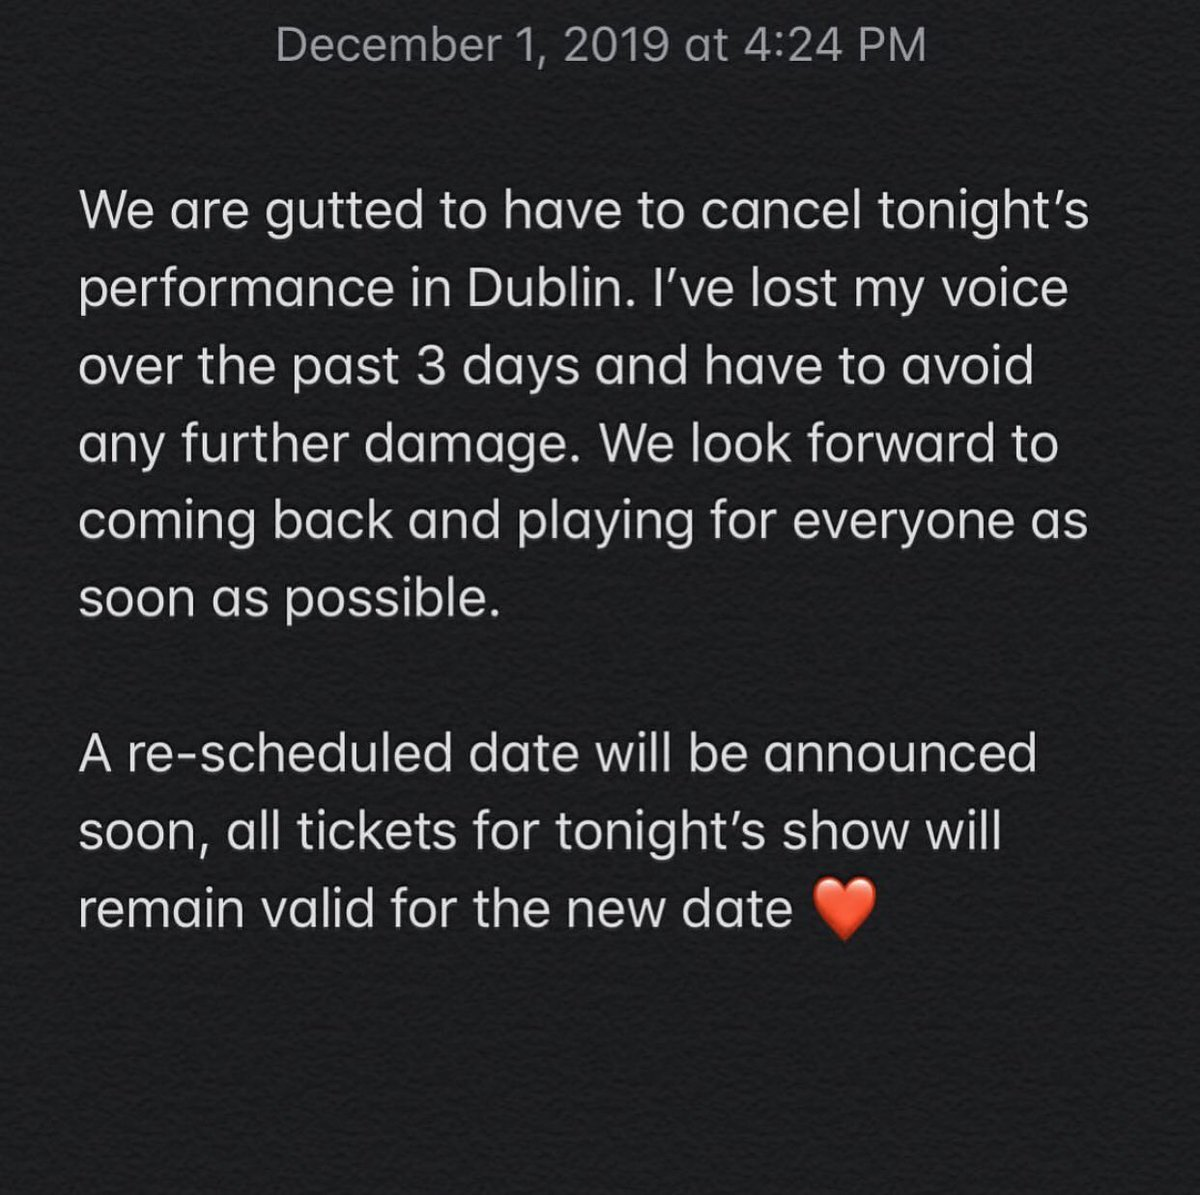 Statement regarding tonight's show @academydublin